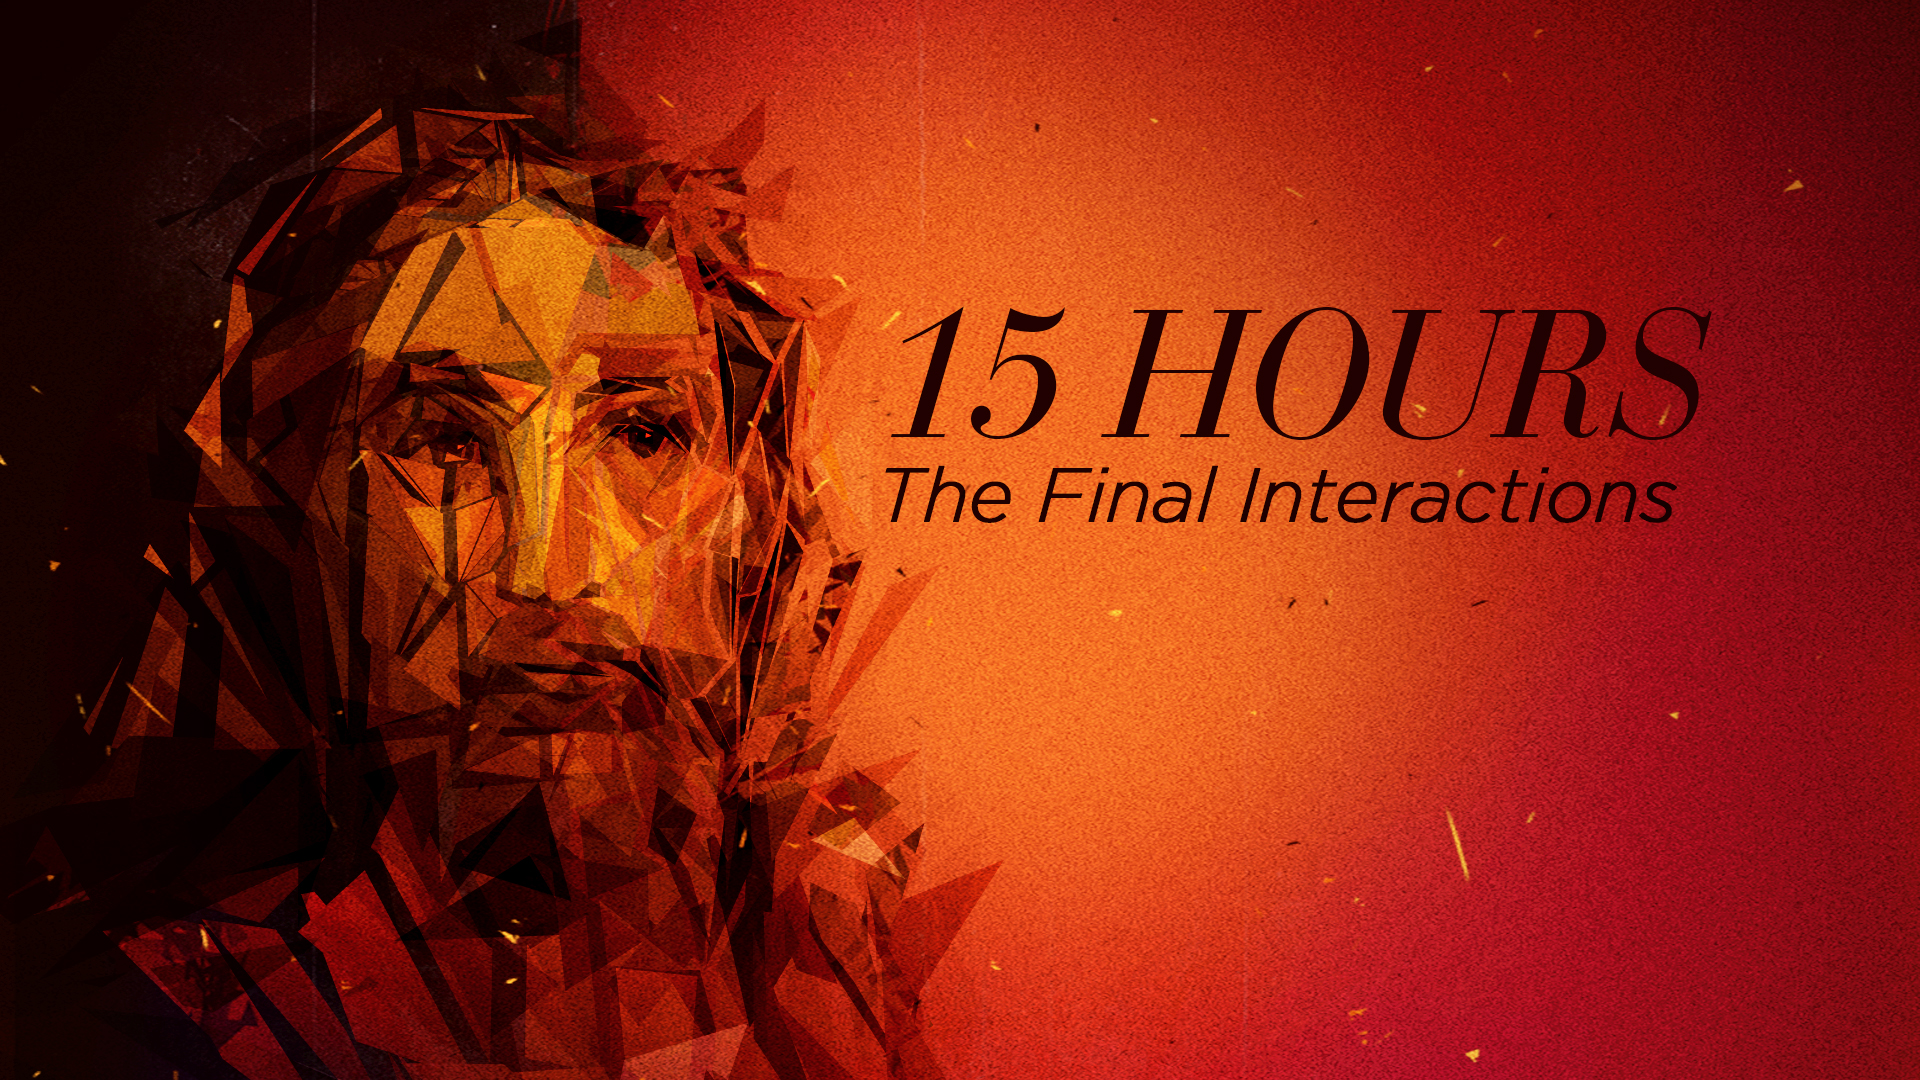 15 Hours: The Final Interactions